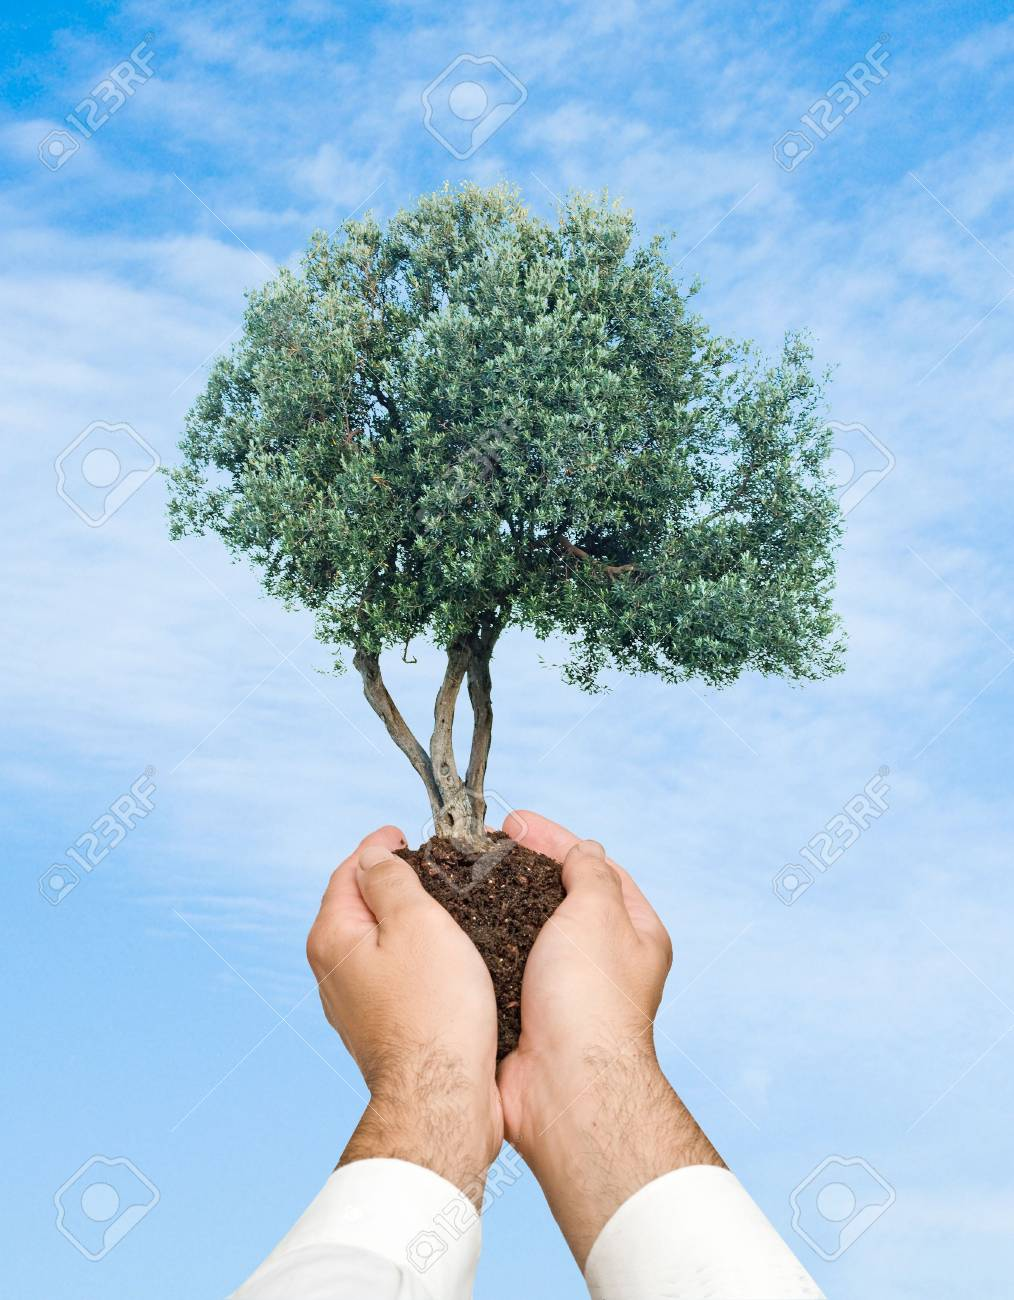 Olive tree in hands as a symbol of nature protection stock photo olive tree in hands as a symbol of nature protection stock photo 6819437 buycottarizona Choice Image